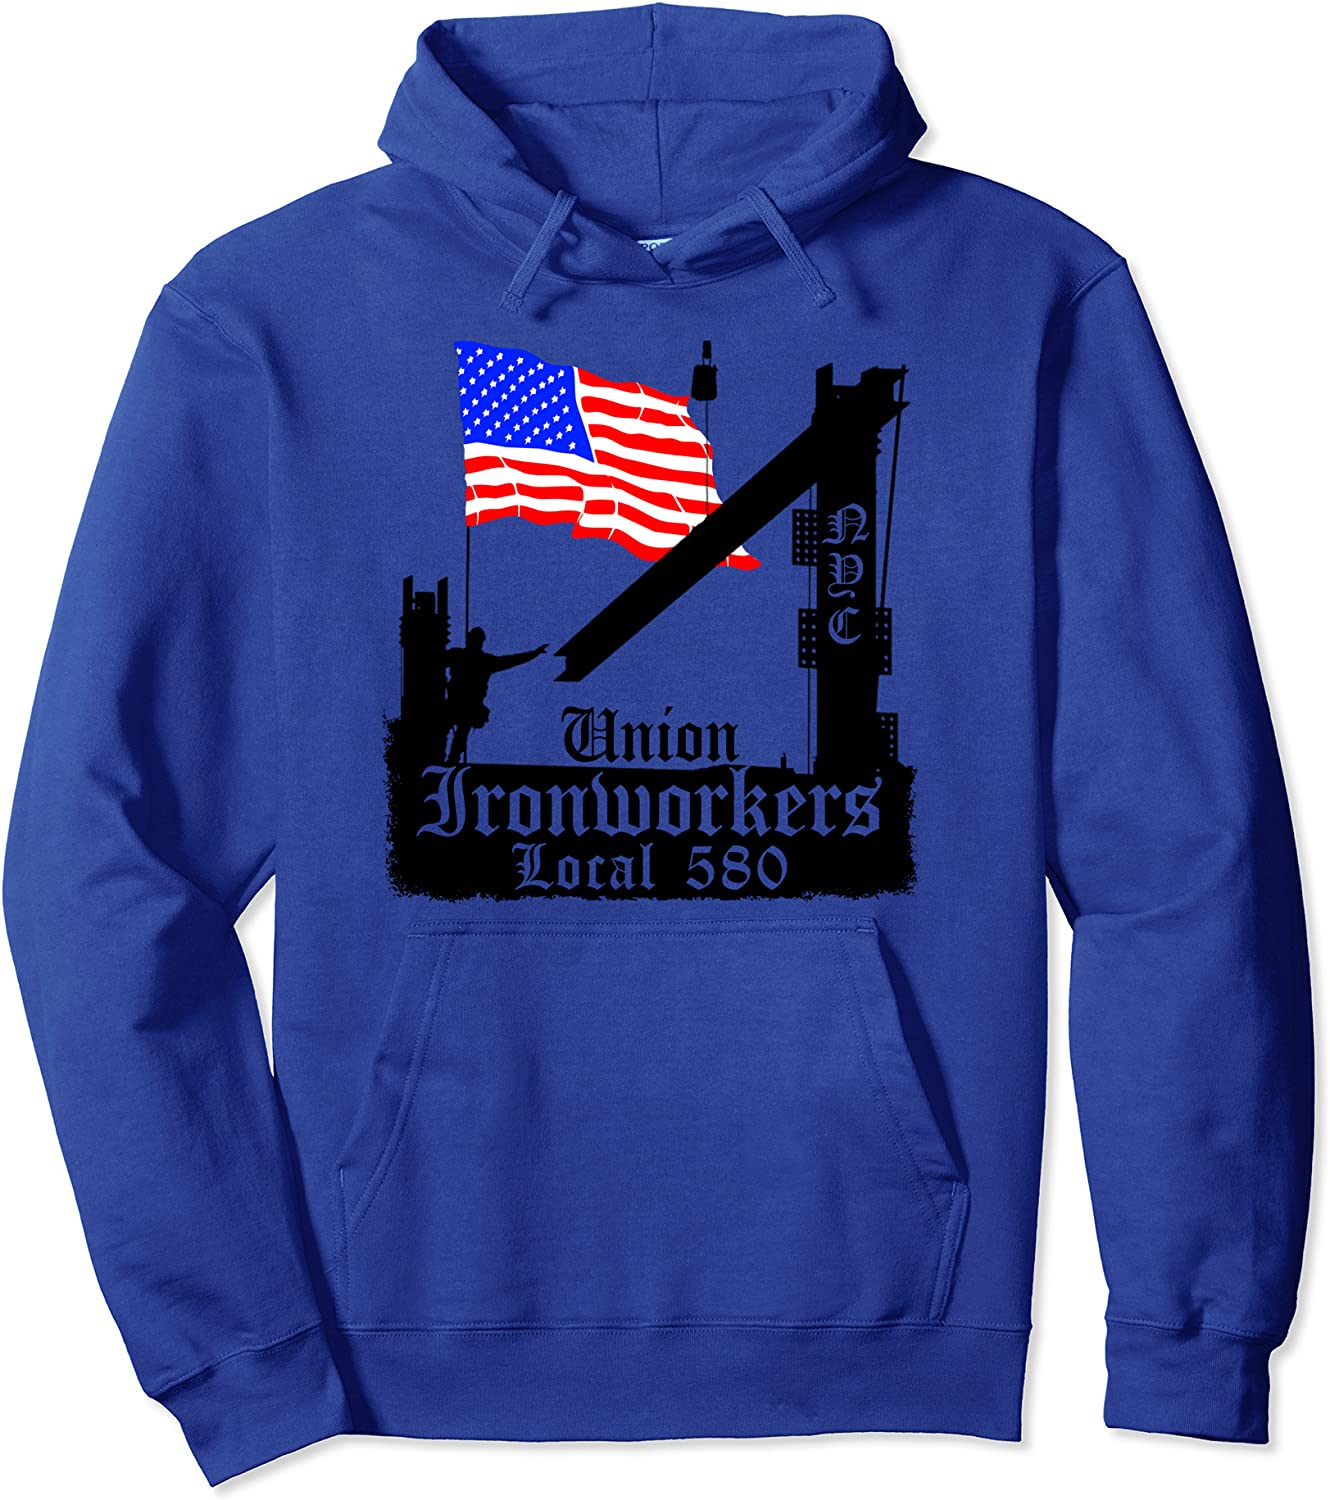 Union favorite Dedication Ironworkers Local 580 NYC Hoodie Pullover Flag American